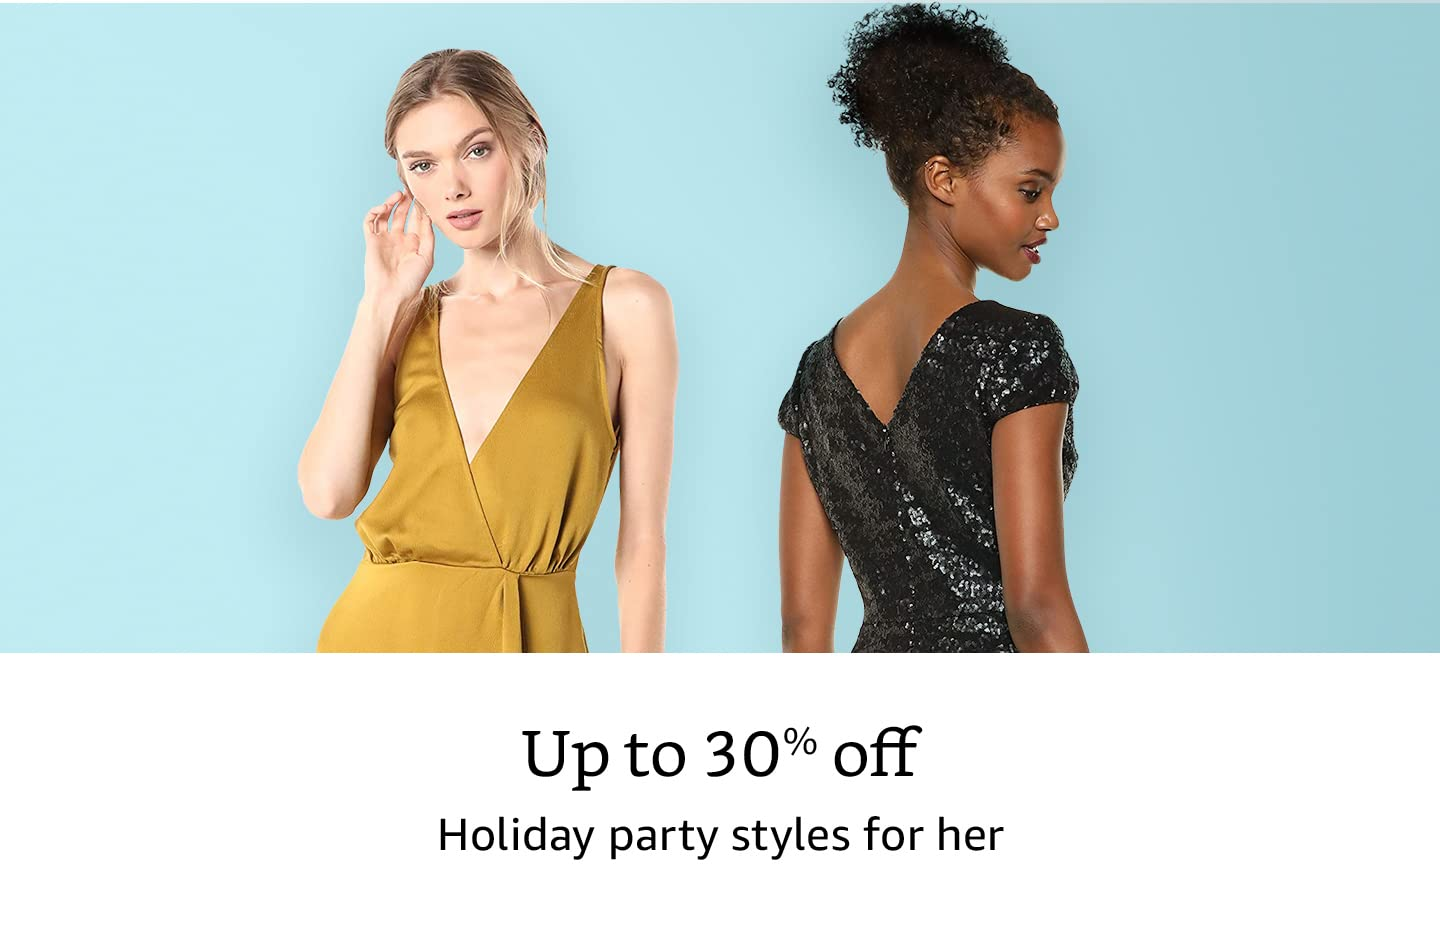 Up to 30% off Holiday party styles for her